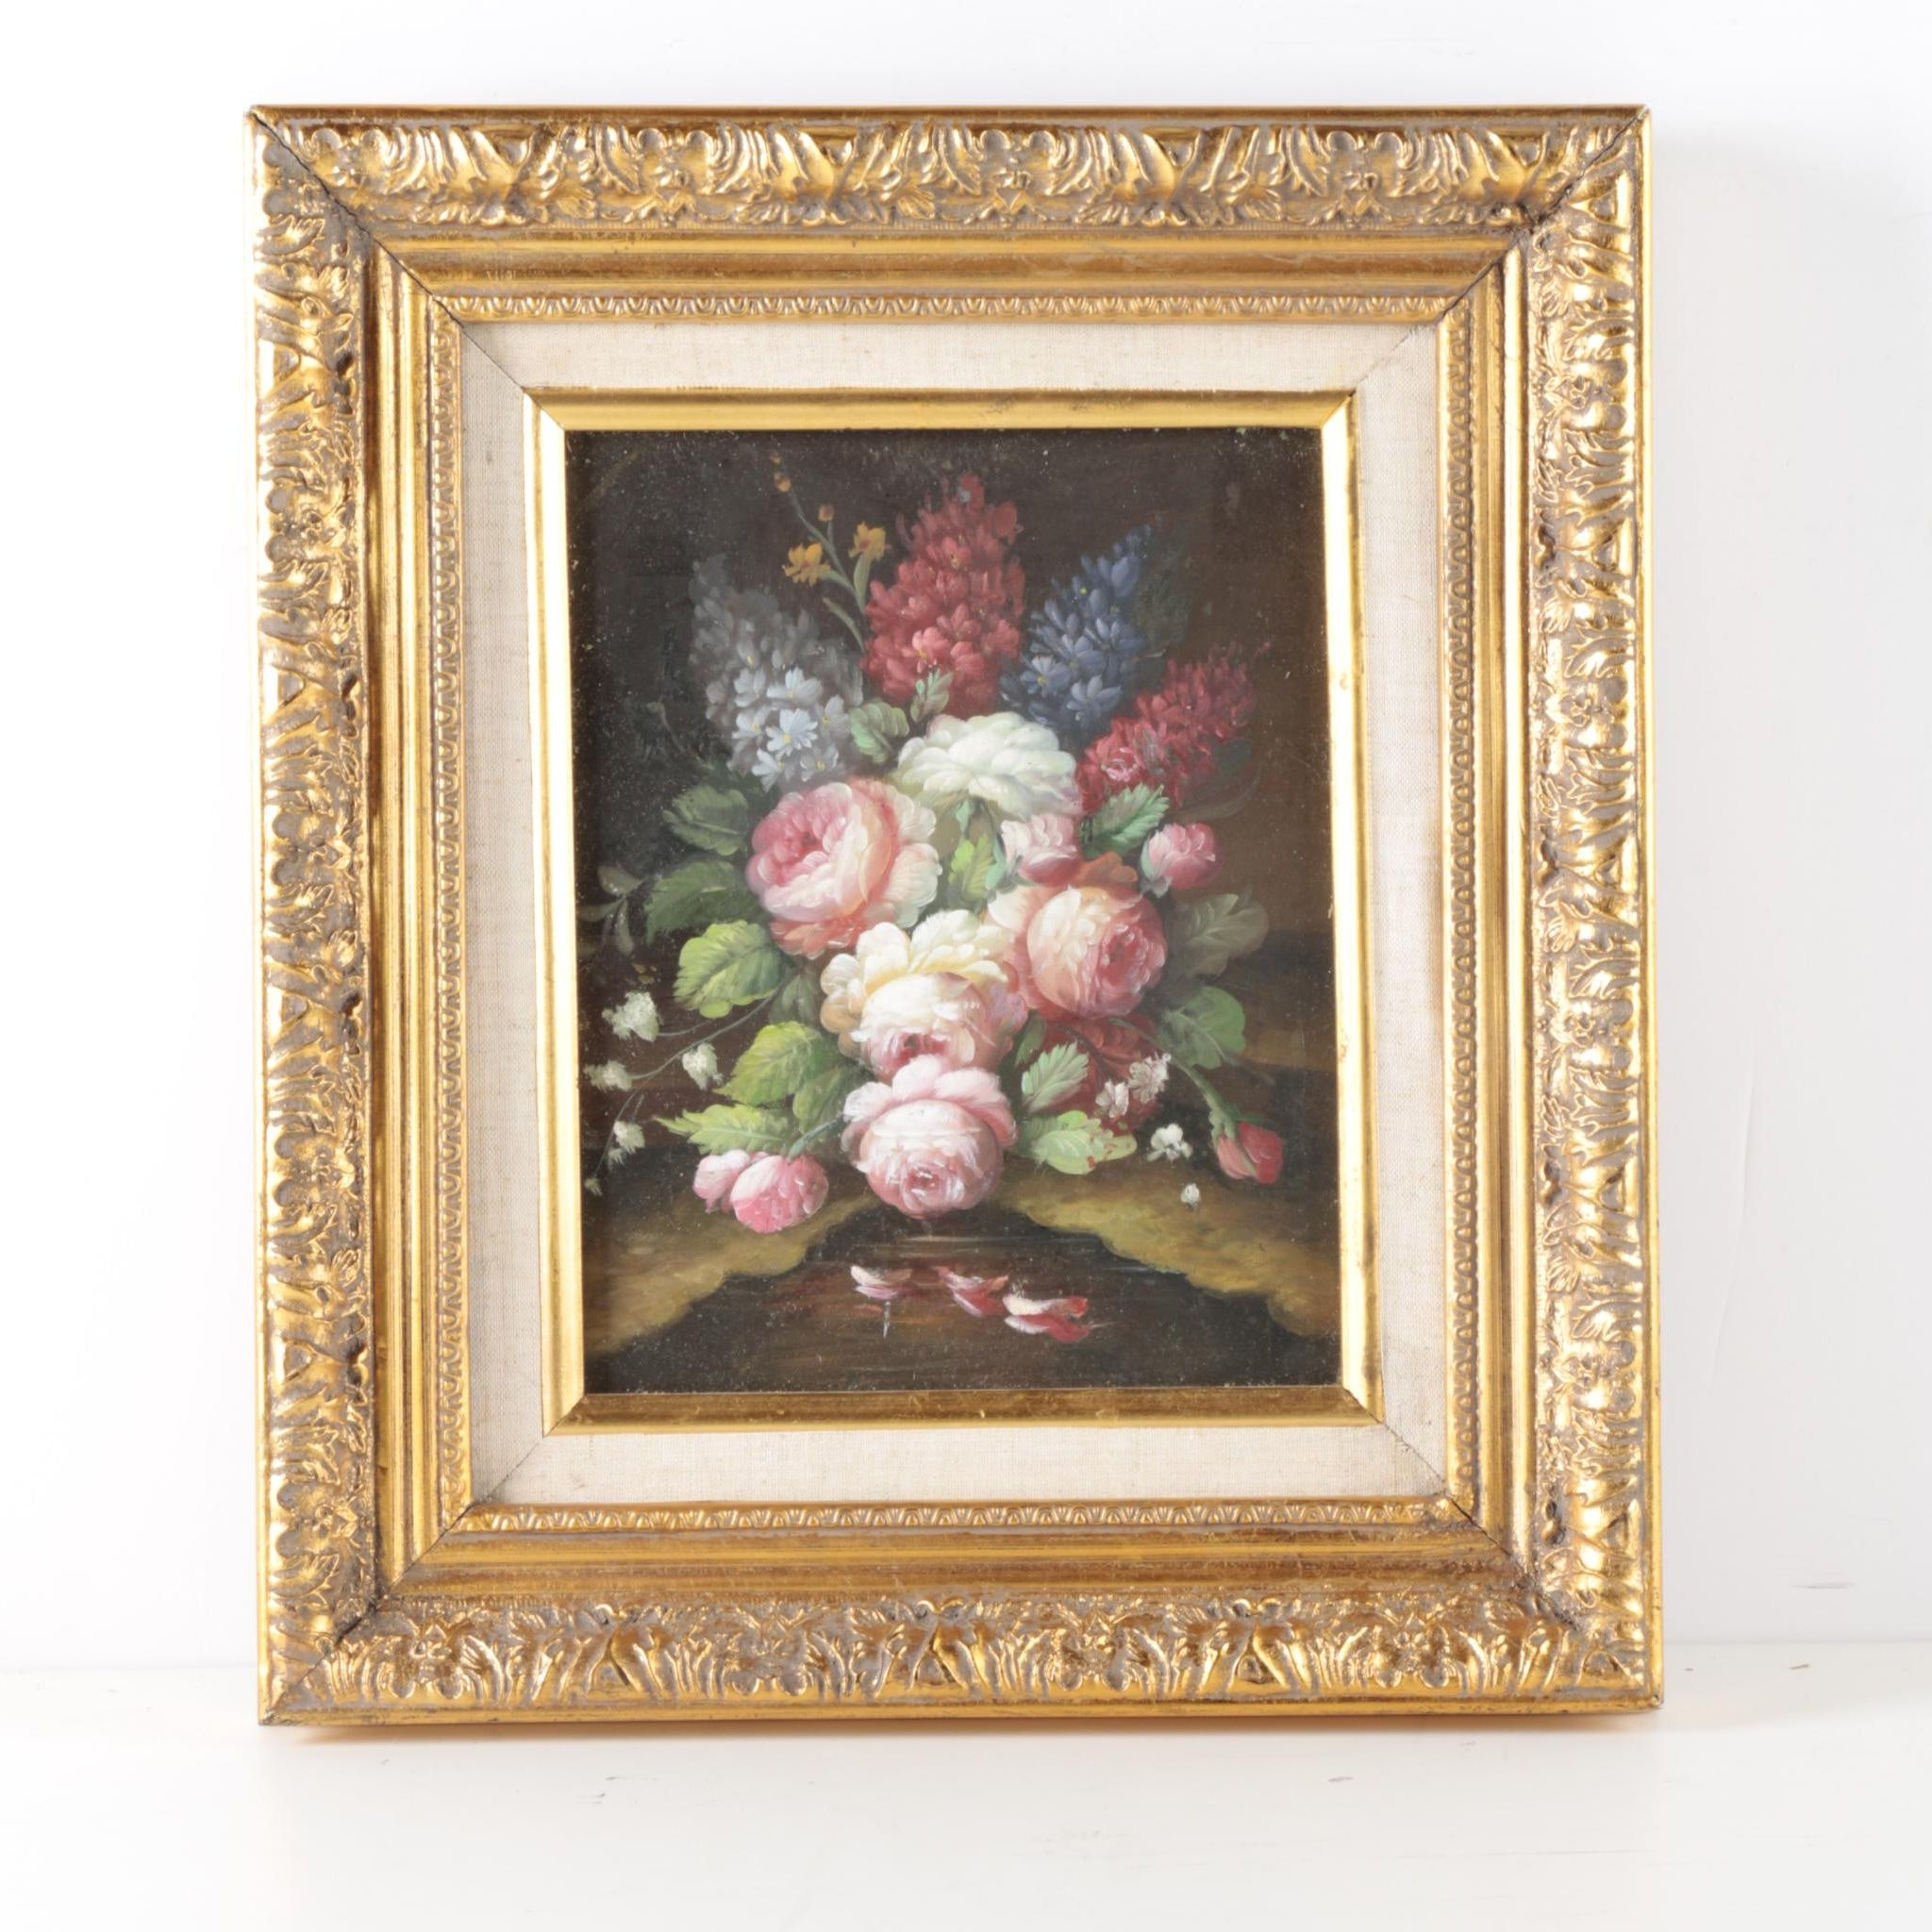 Framed Oil Painting on Canvas of Floral Still Life